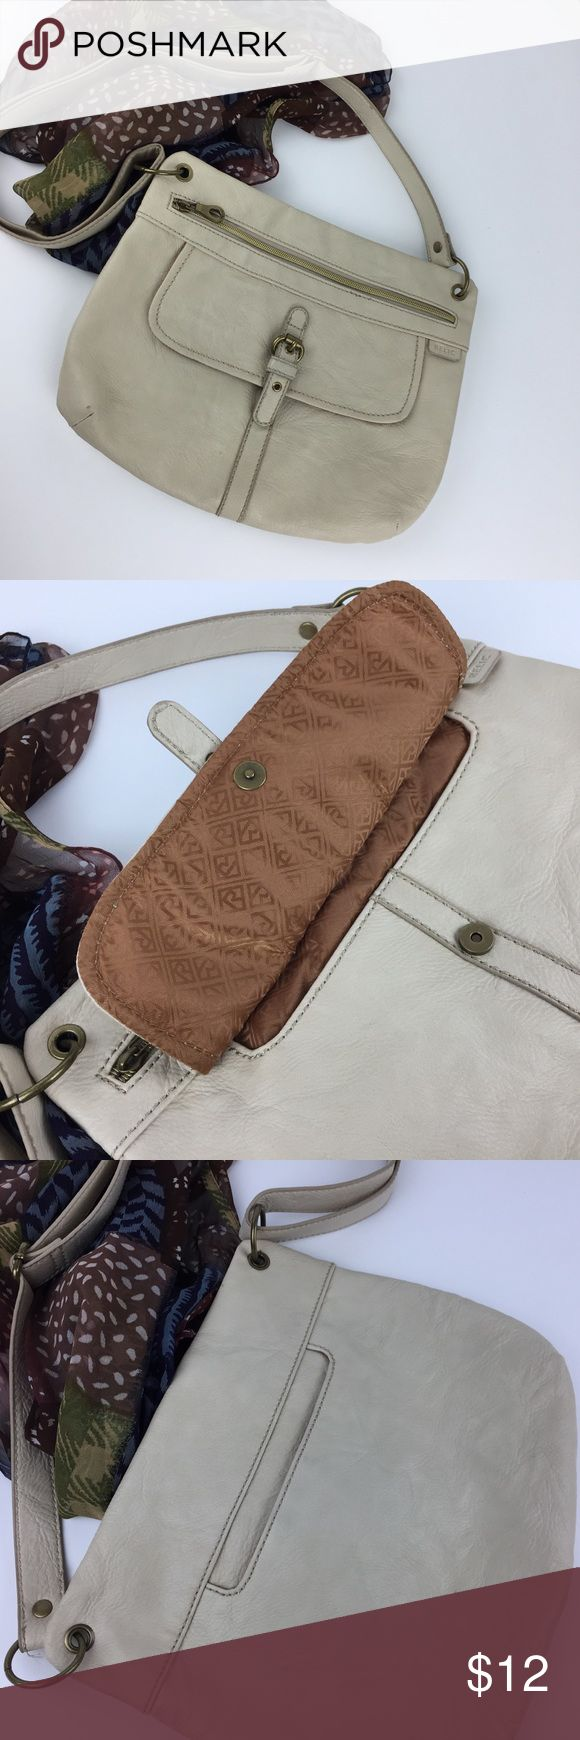 Relic Faux Leather Beige Shoulder Bag 12X10. A beige shoulder bag by Relic. Faux leather with a long adjustable strap. 2 outside pockets and a zippered main opening. Clean inside. 12x10x2 Relic Bags Shoulder Bags